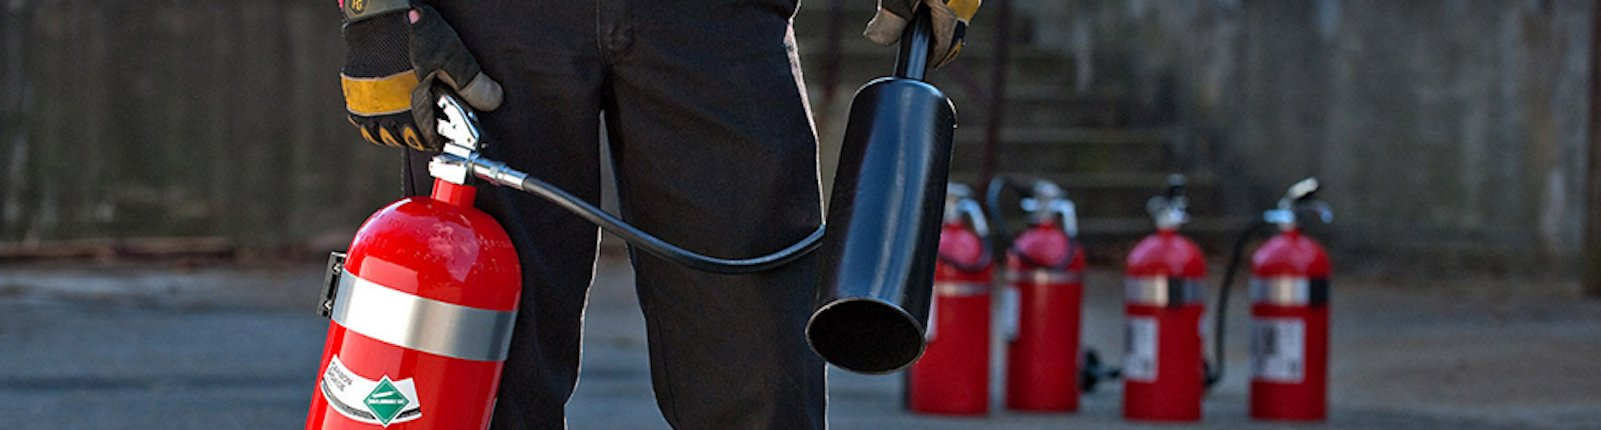 Close up of technician holding fire extinguisher